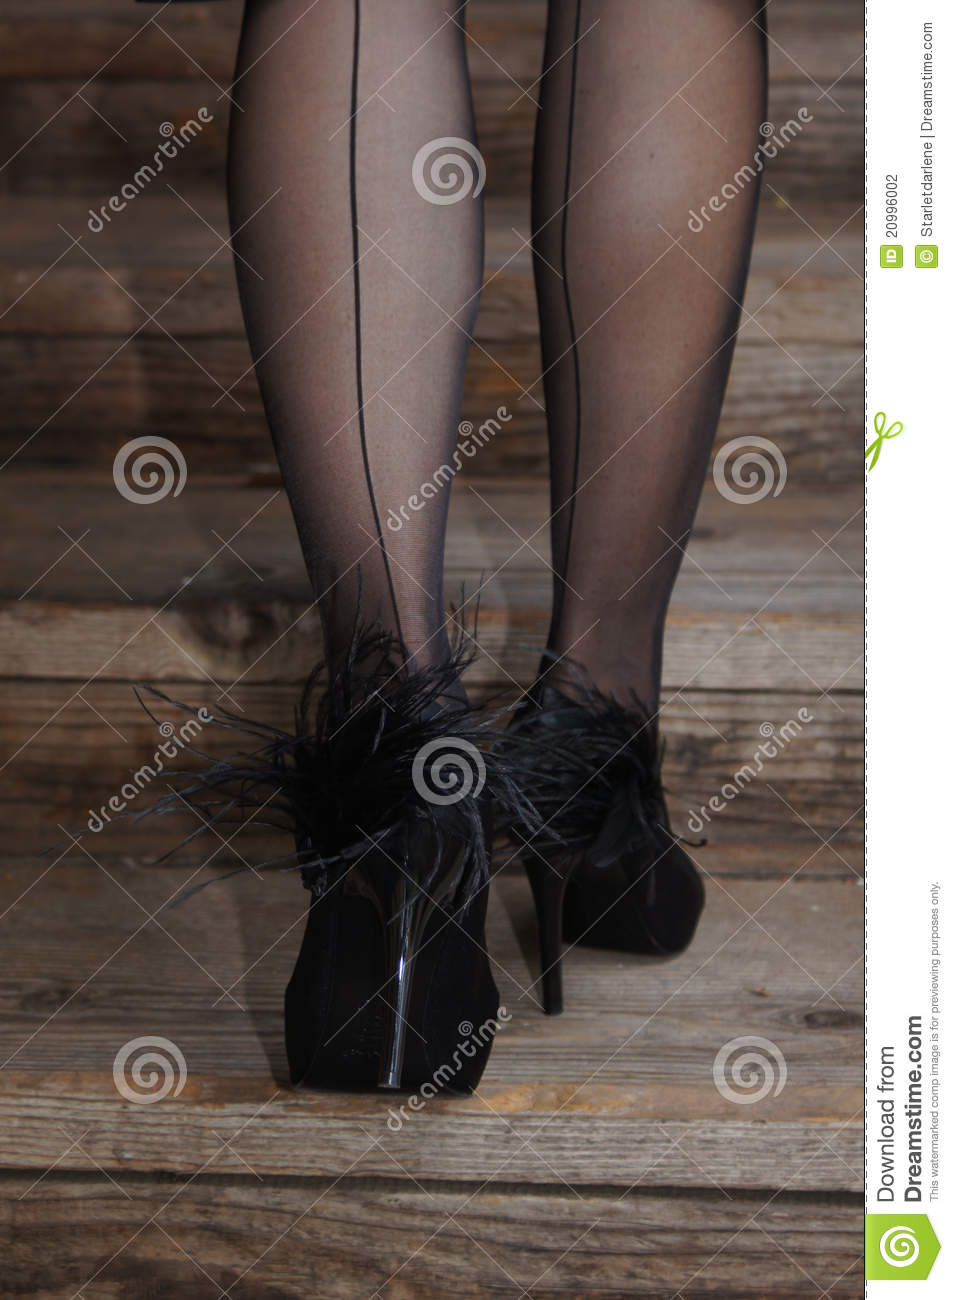 cb5bb4957ae Legs With Black Stockings And Feather Heels Stock Photo - Image of ...